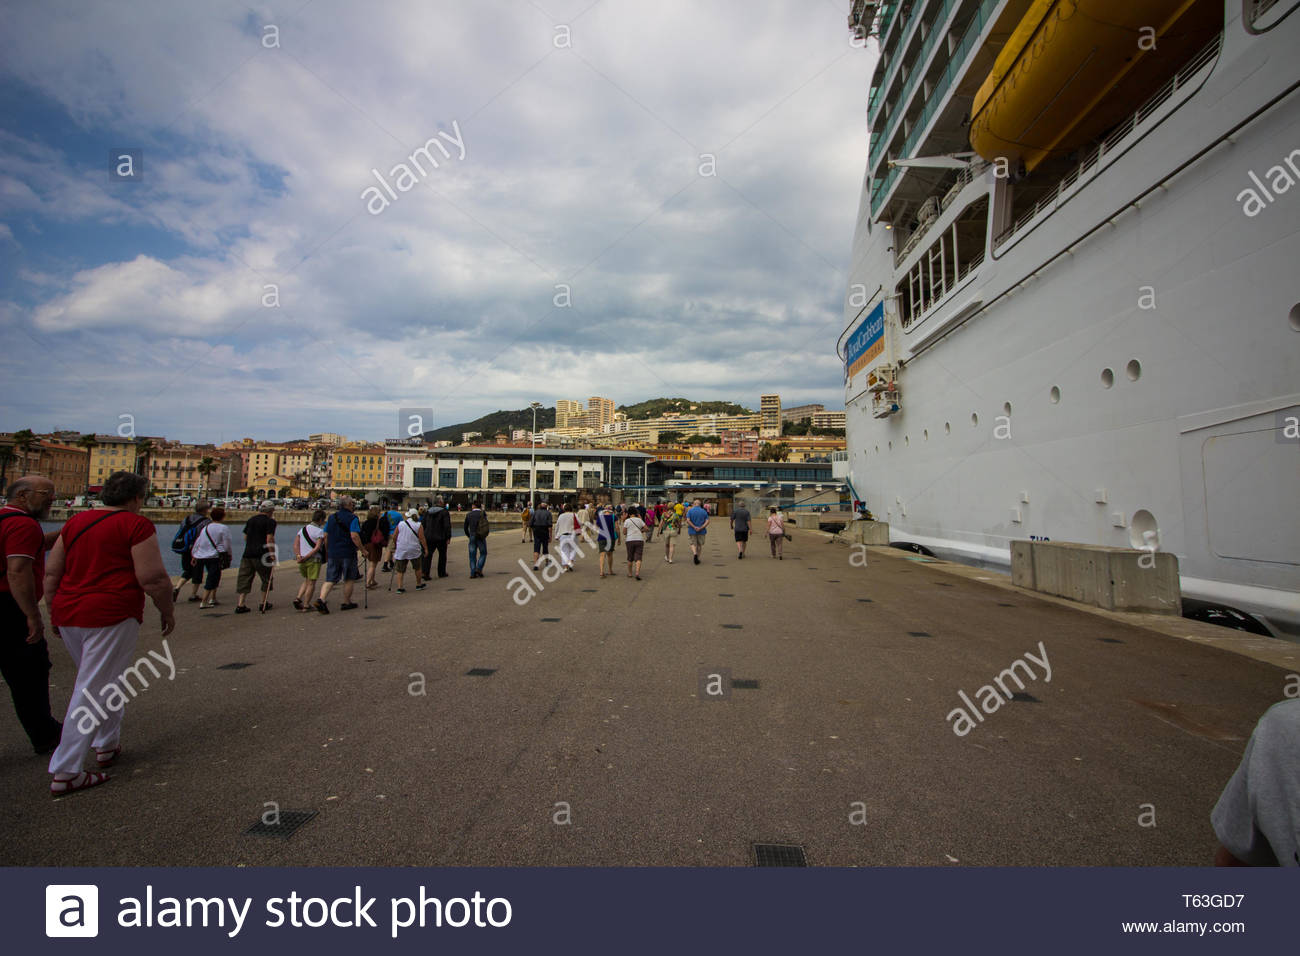 Corsica, France - May, 19, 2017: Cruise passengers making their way from royal caribbean ship to Corsica city. - Stock Image